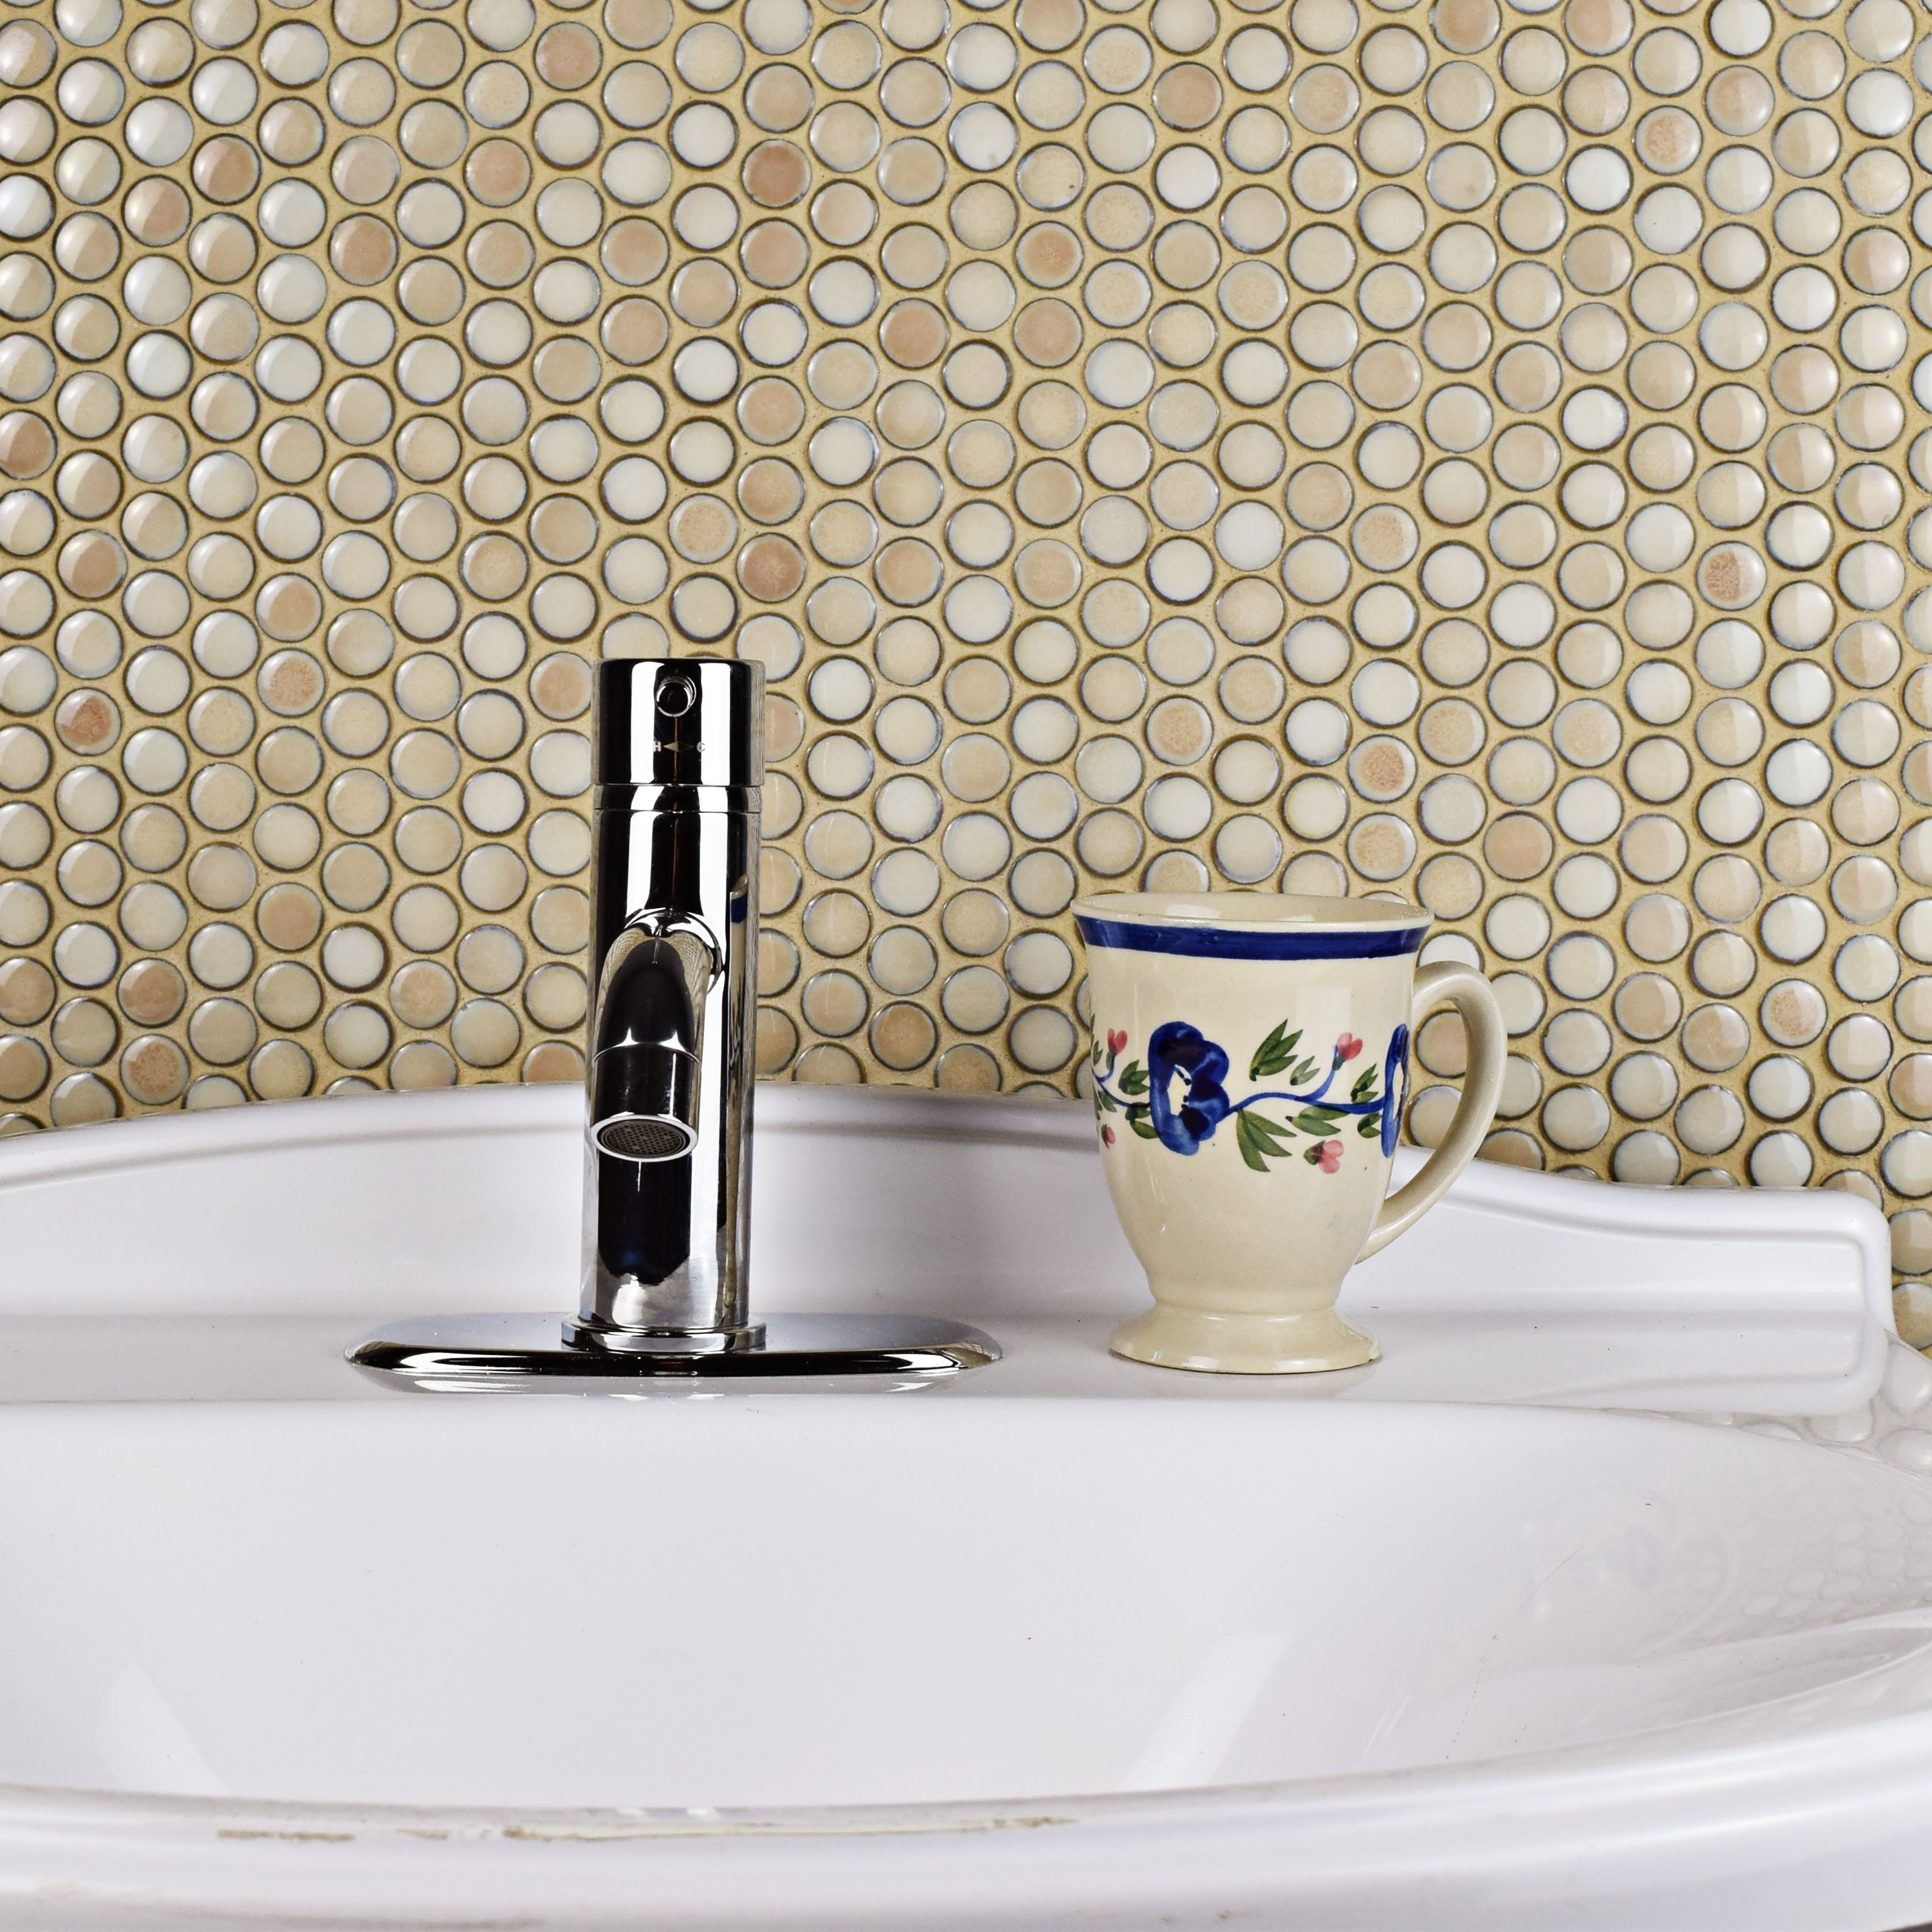 Somertile 12x12 625 Inch Penny Truffle Porcelain Mosaic Floor And Wall Tile 10 Tiles 10 74 Sqft Overstock 10905936